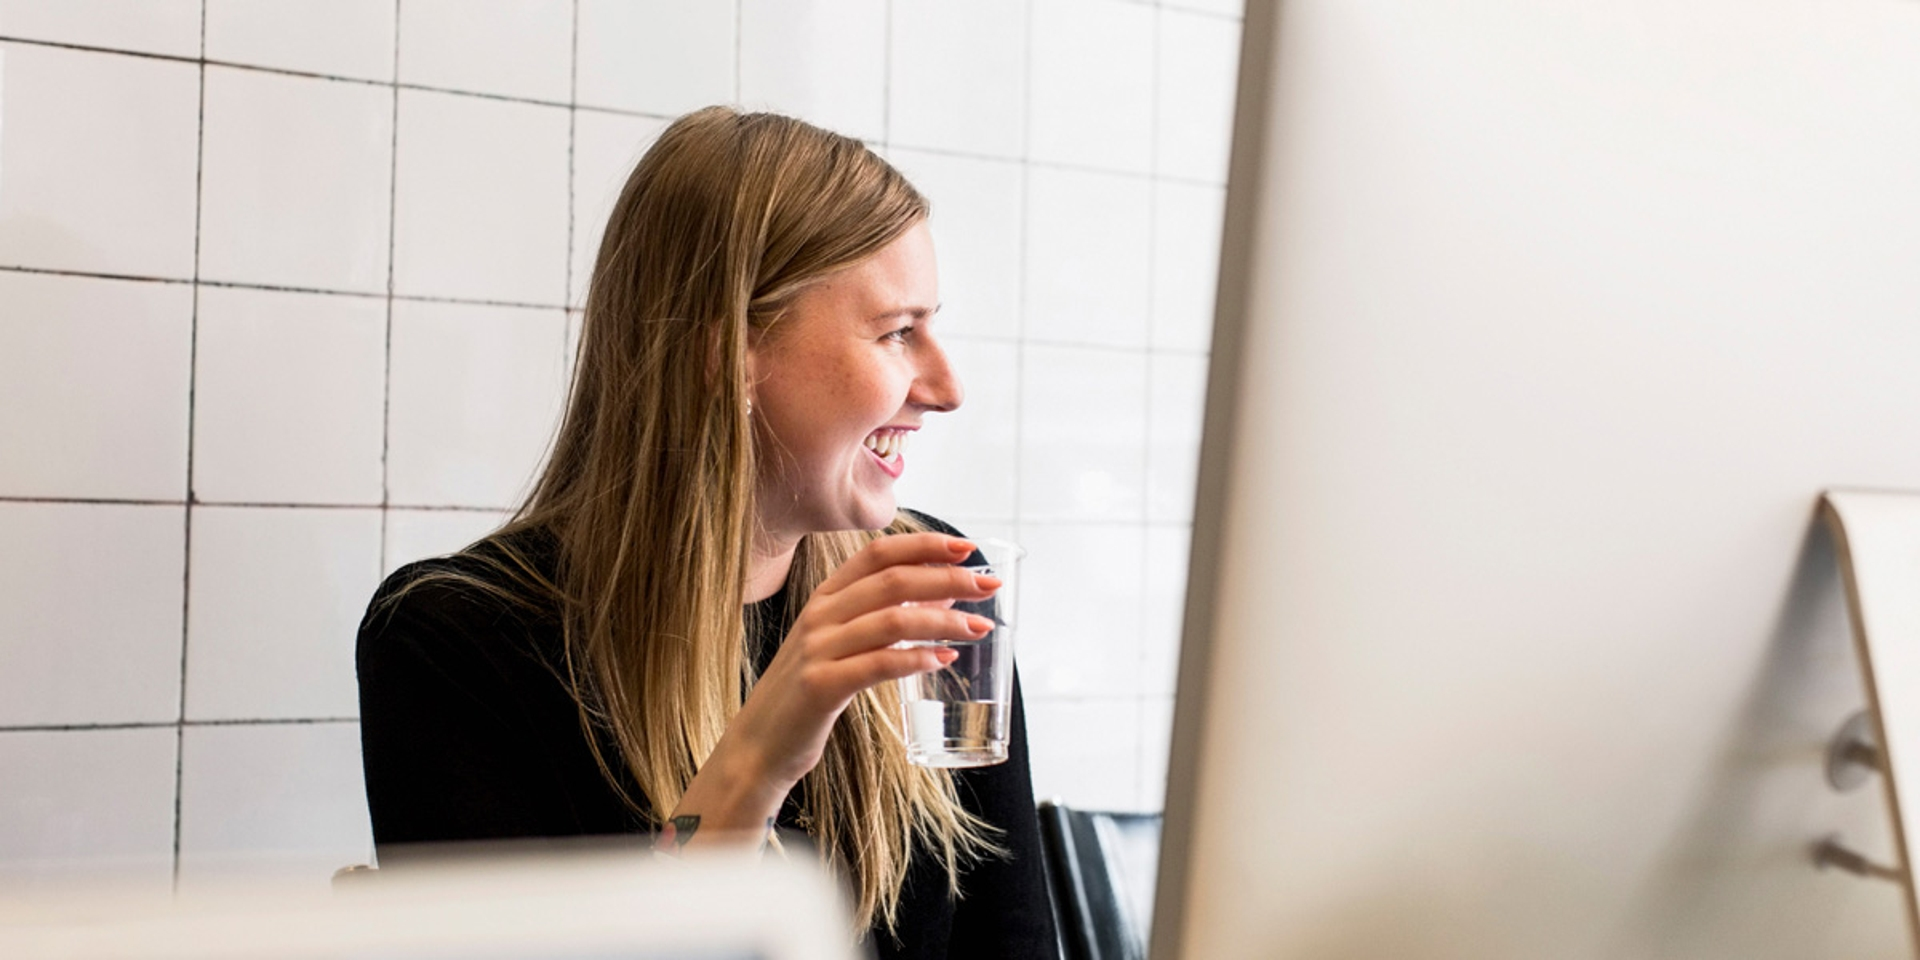 academic work young professionals